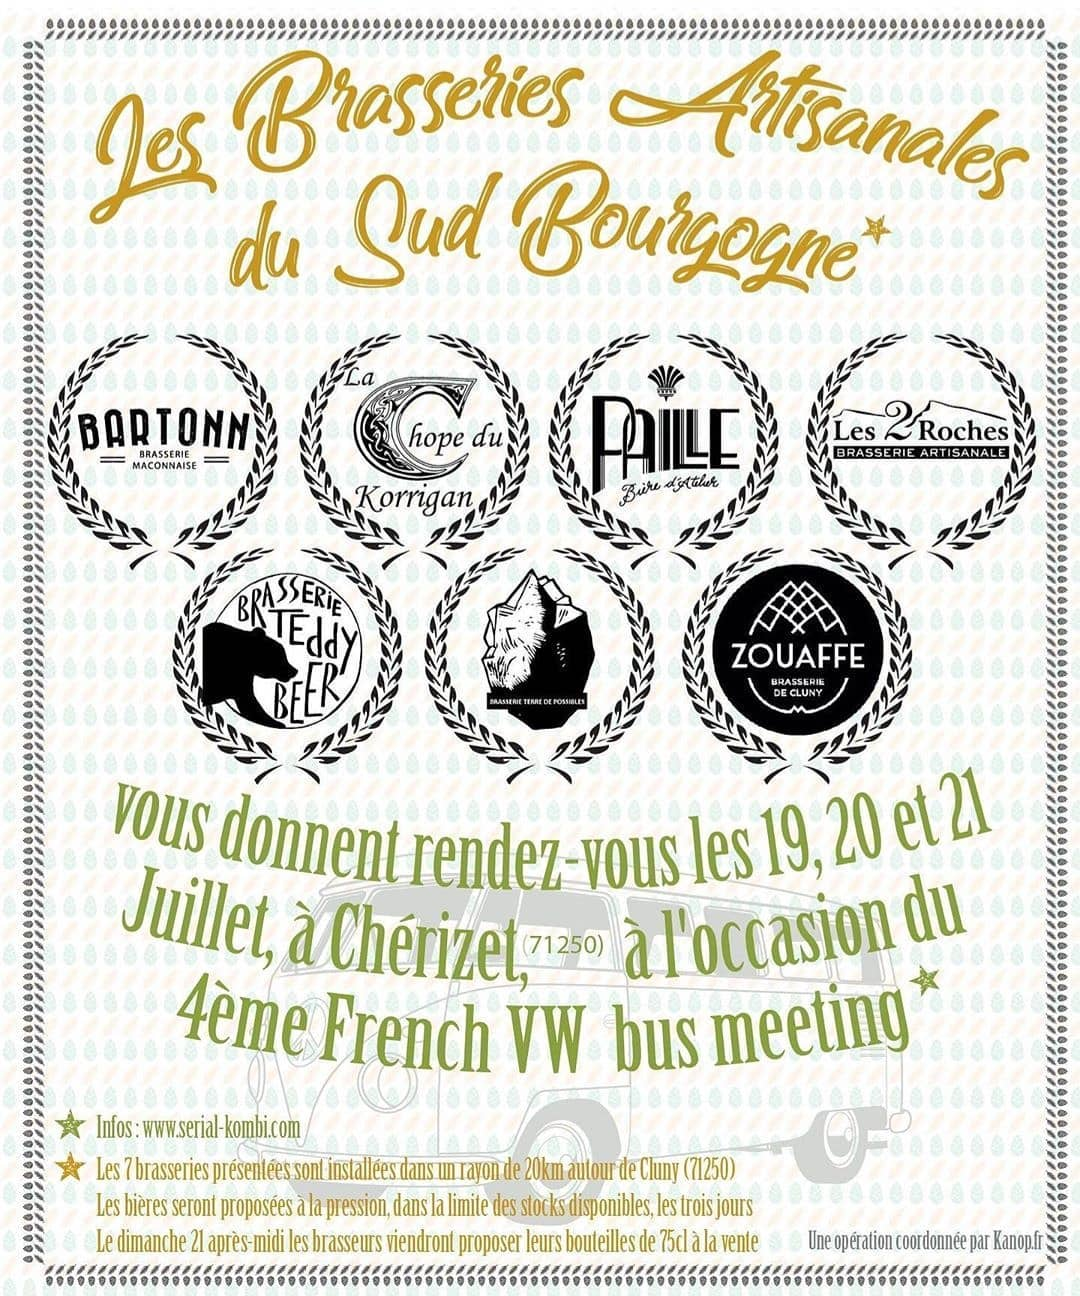 brasseries artisanales sud bourgogne french vw meeting 2019